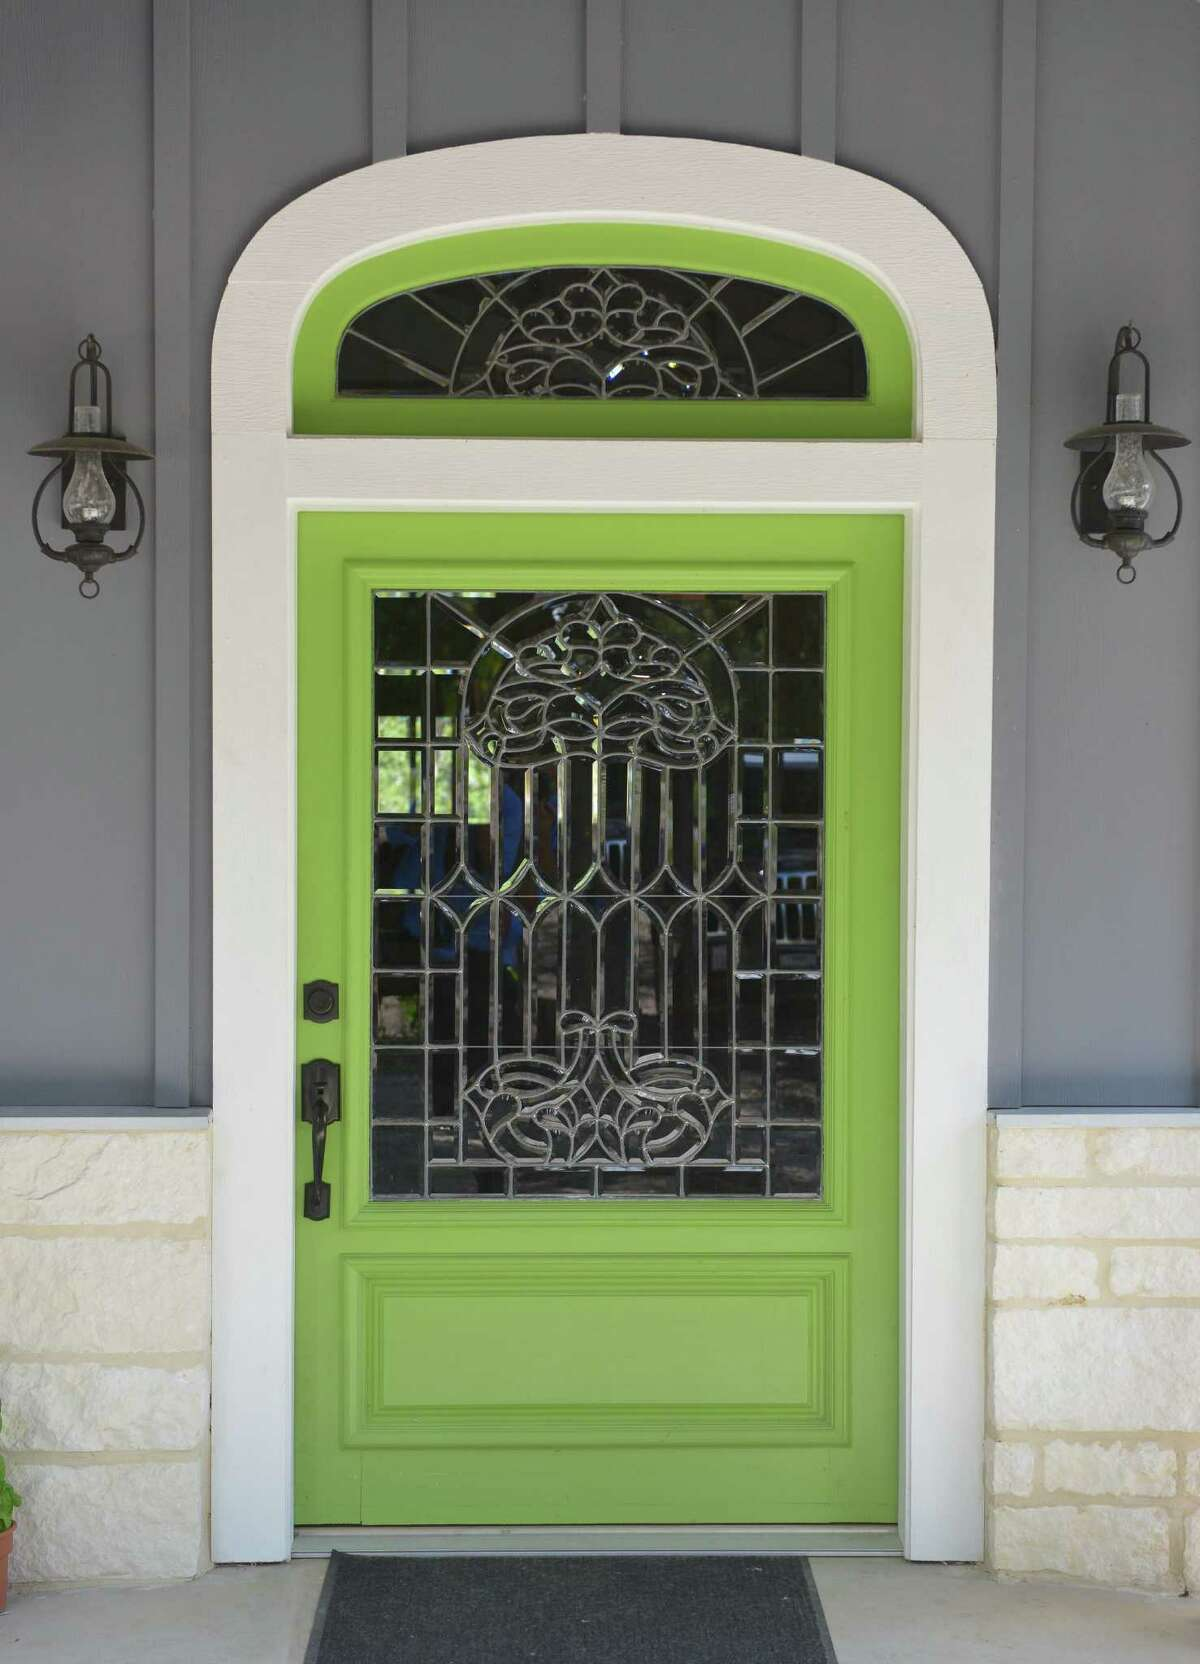 Tricia and Jeff Zunker found their front door at a salvage company and had the leaded glass in it restored.